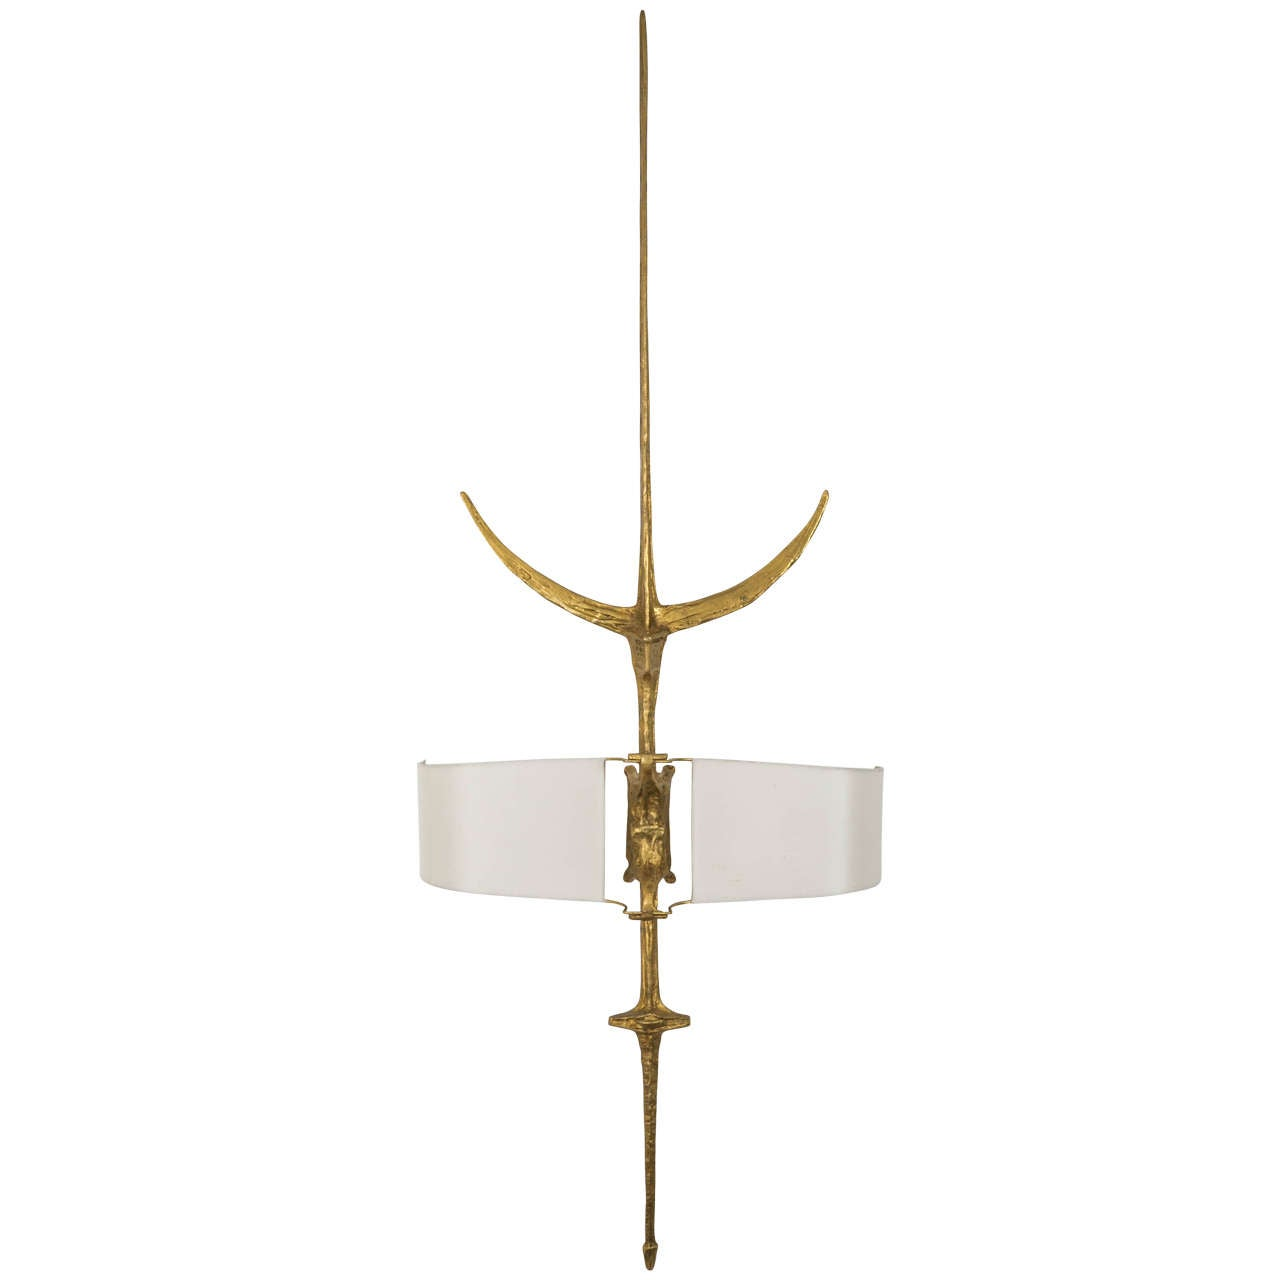 Bronze Wall Sconce, circa 1960s by Felix Agostini For Sale at 1stdibs